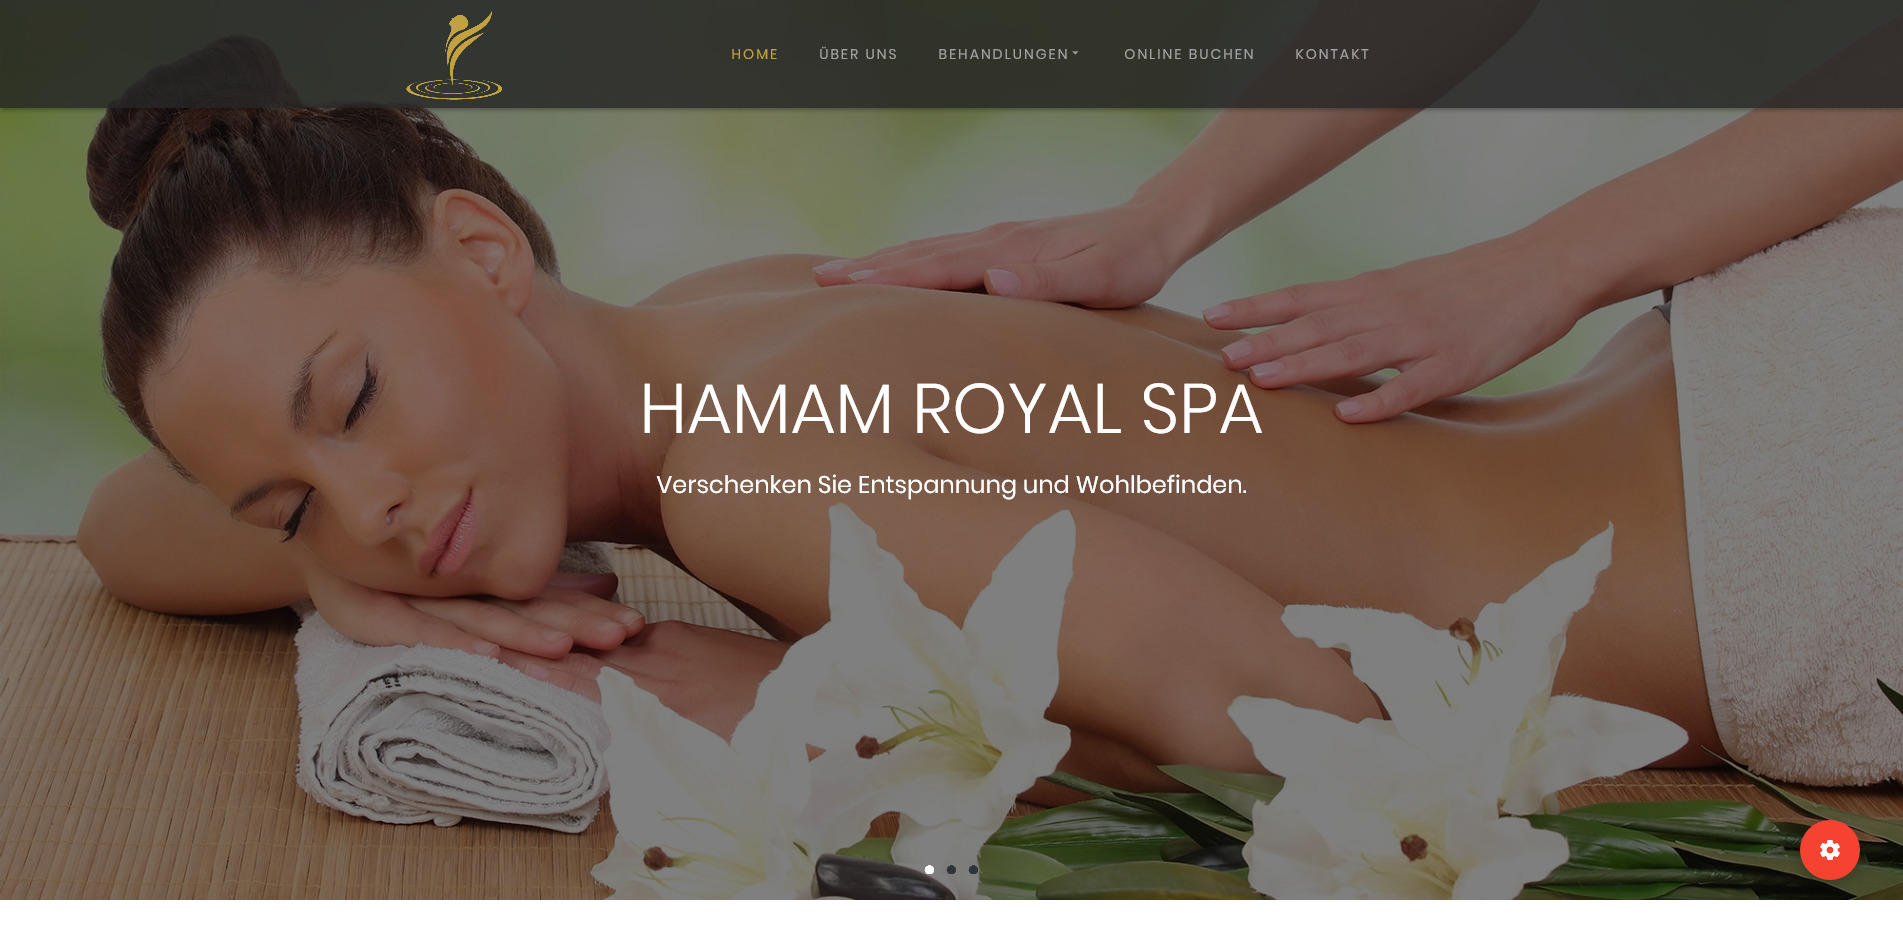 Hamam Royal SPA